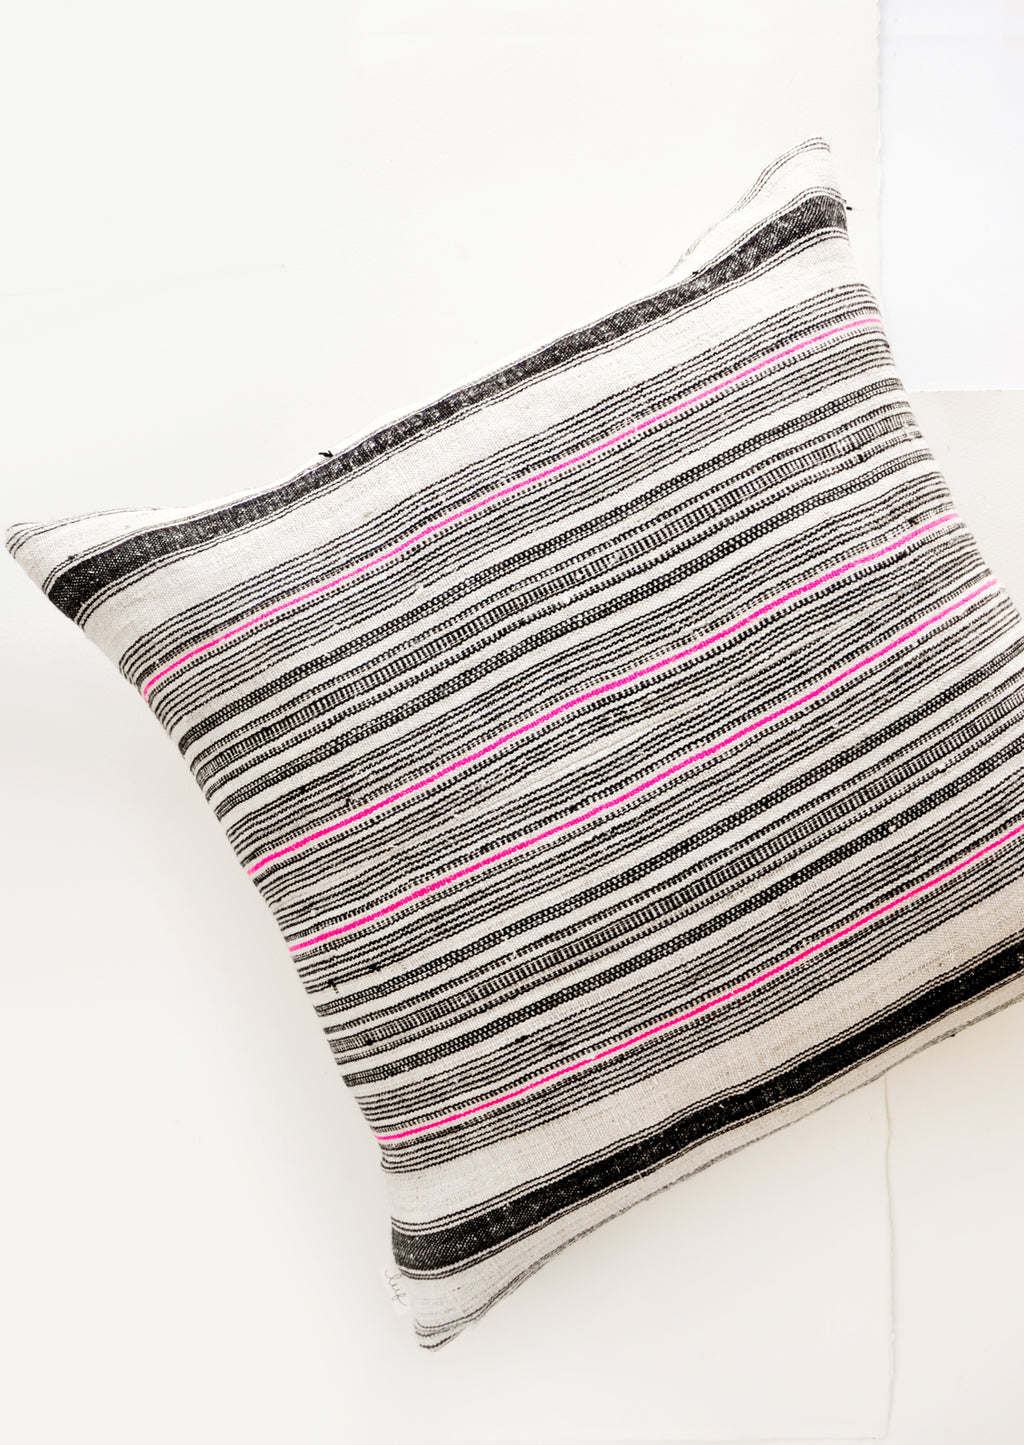 Hmong Hemp Pillow in Black & Pink